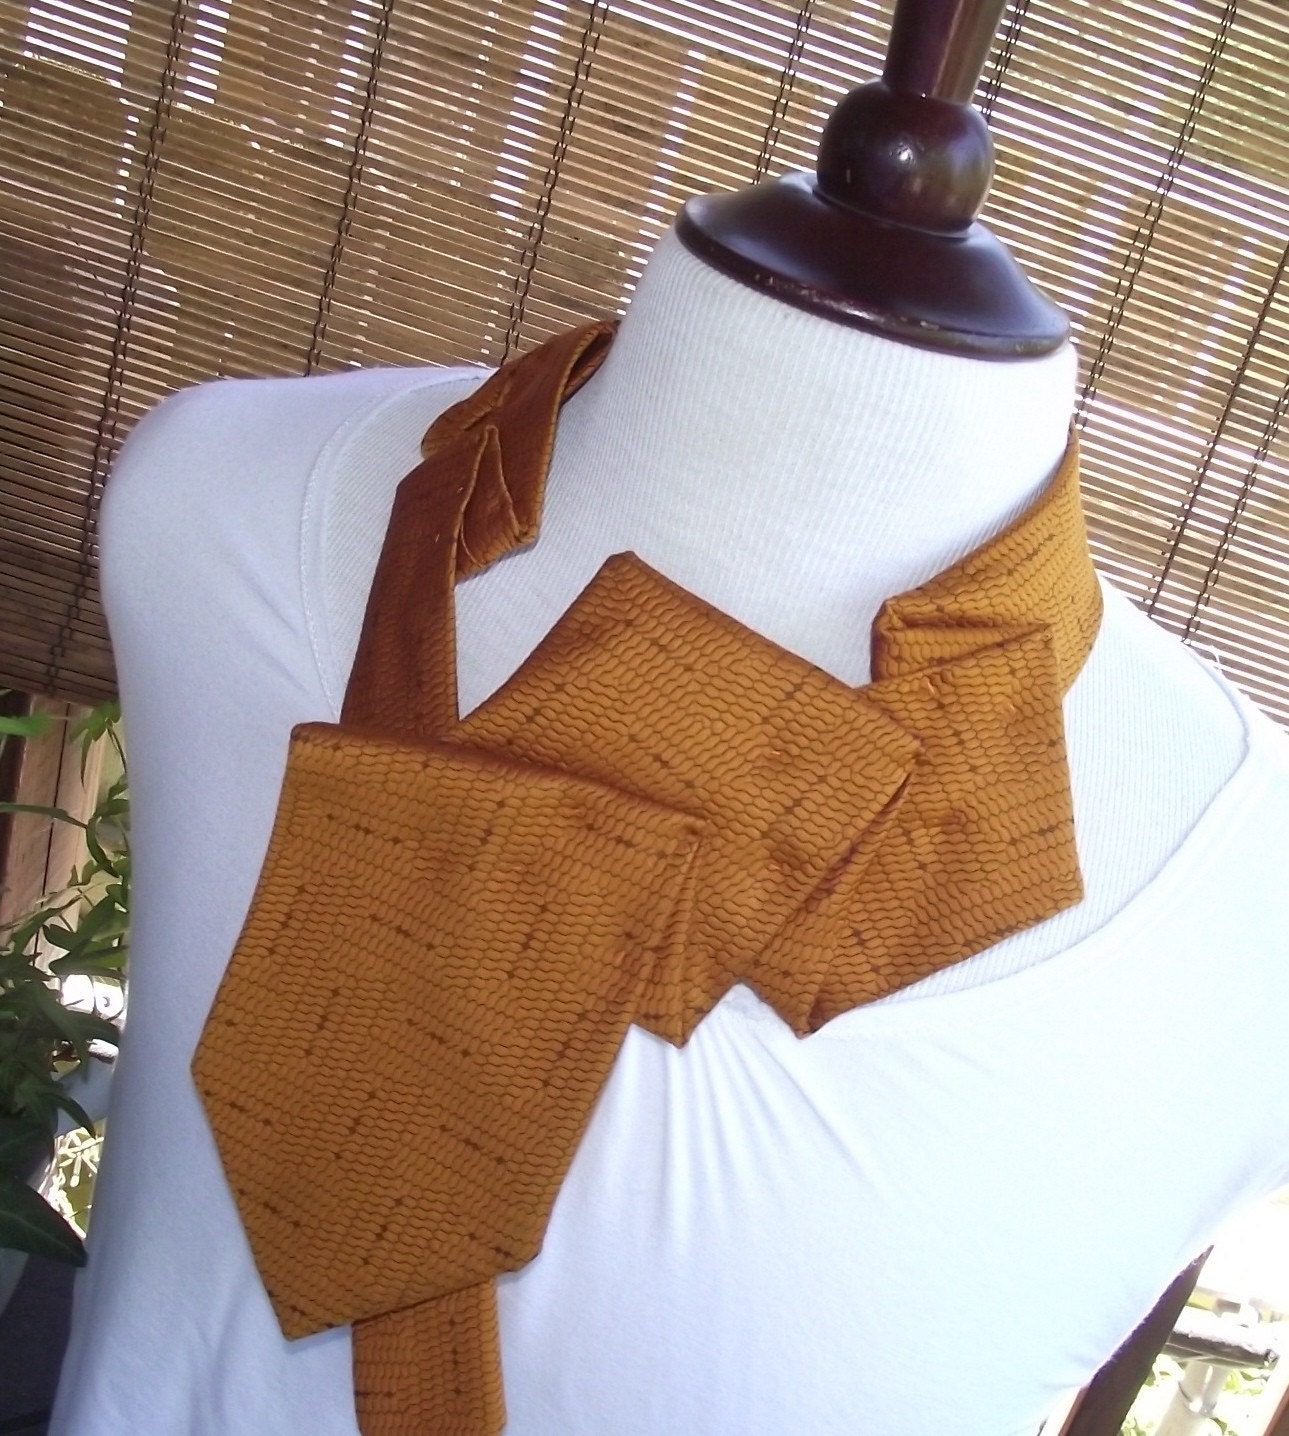 Constance- Handstiched Upcycled Vintage Necktie Necklace Collar-Honey Hive